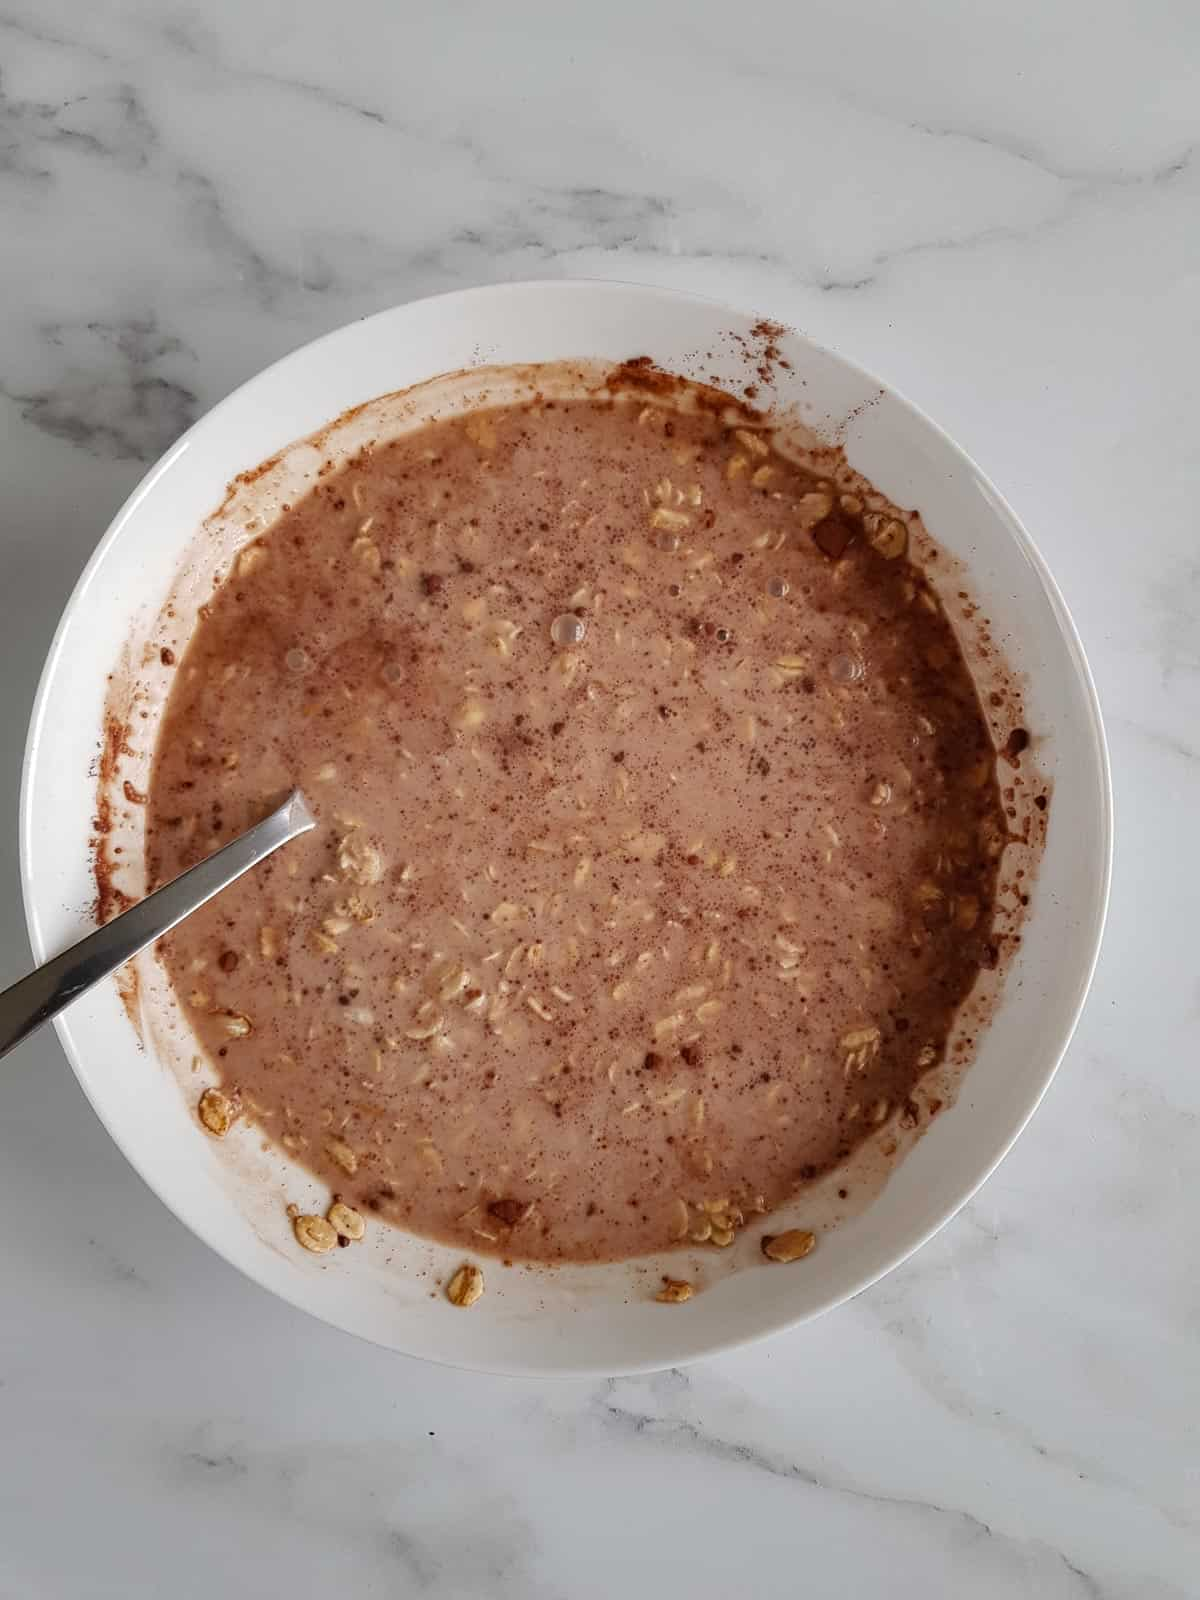 Making chocolate oats in a bowl.